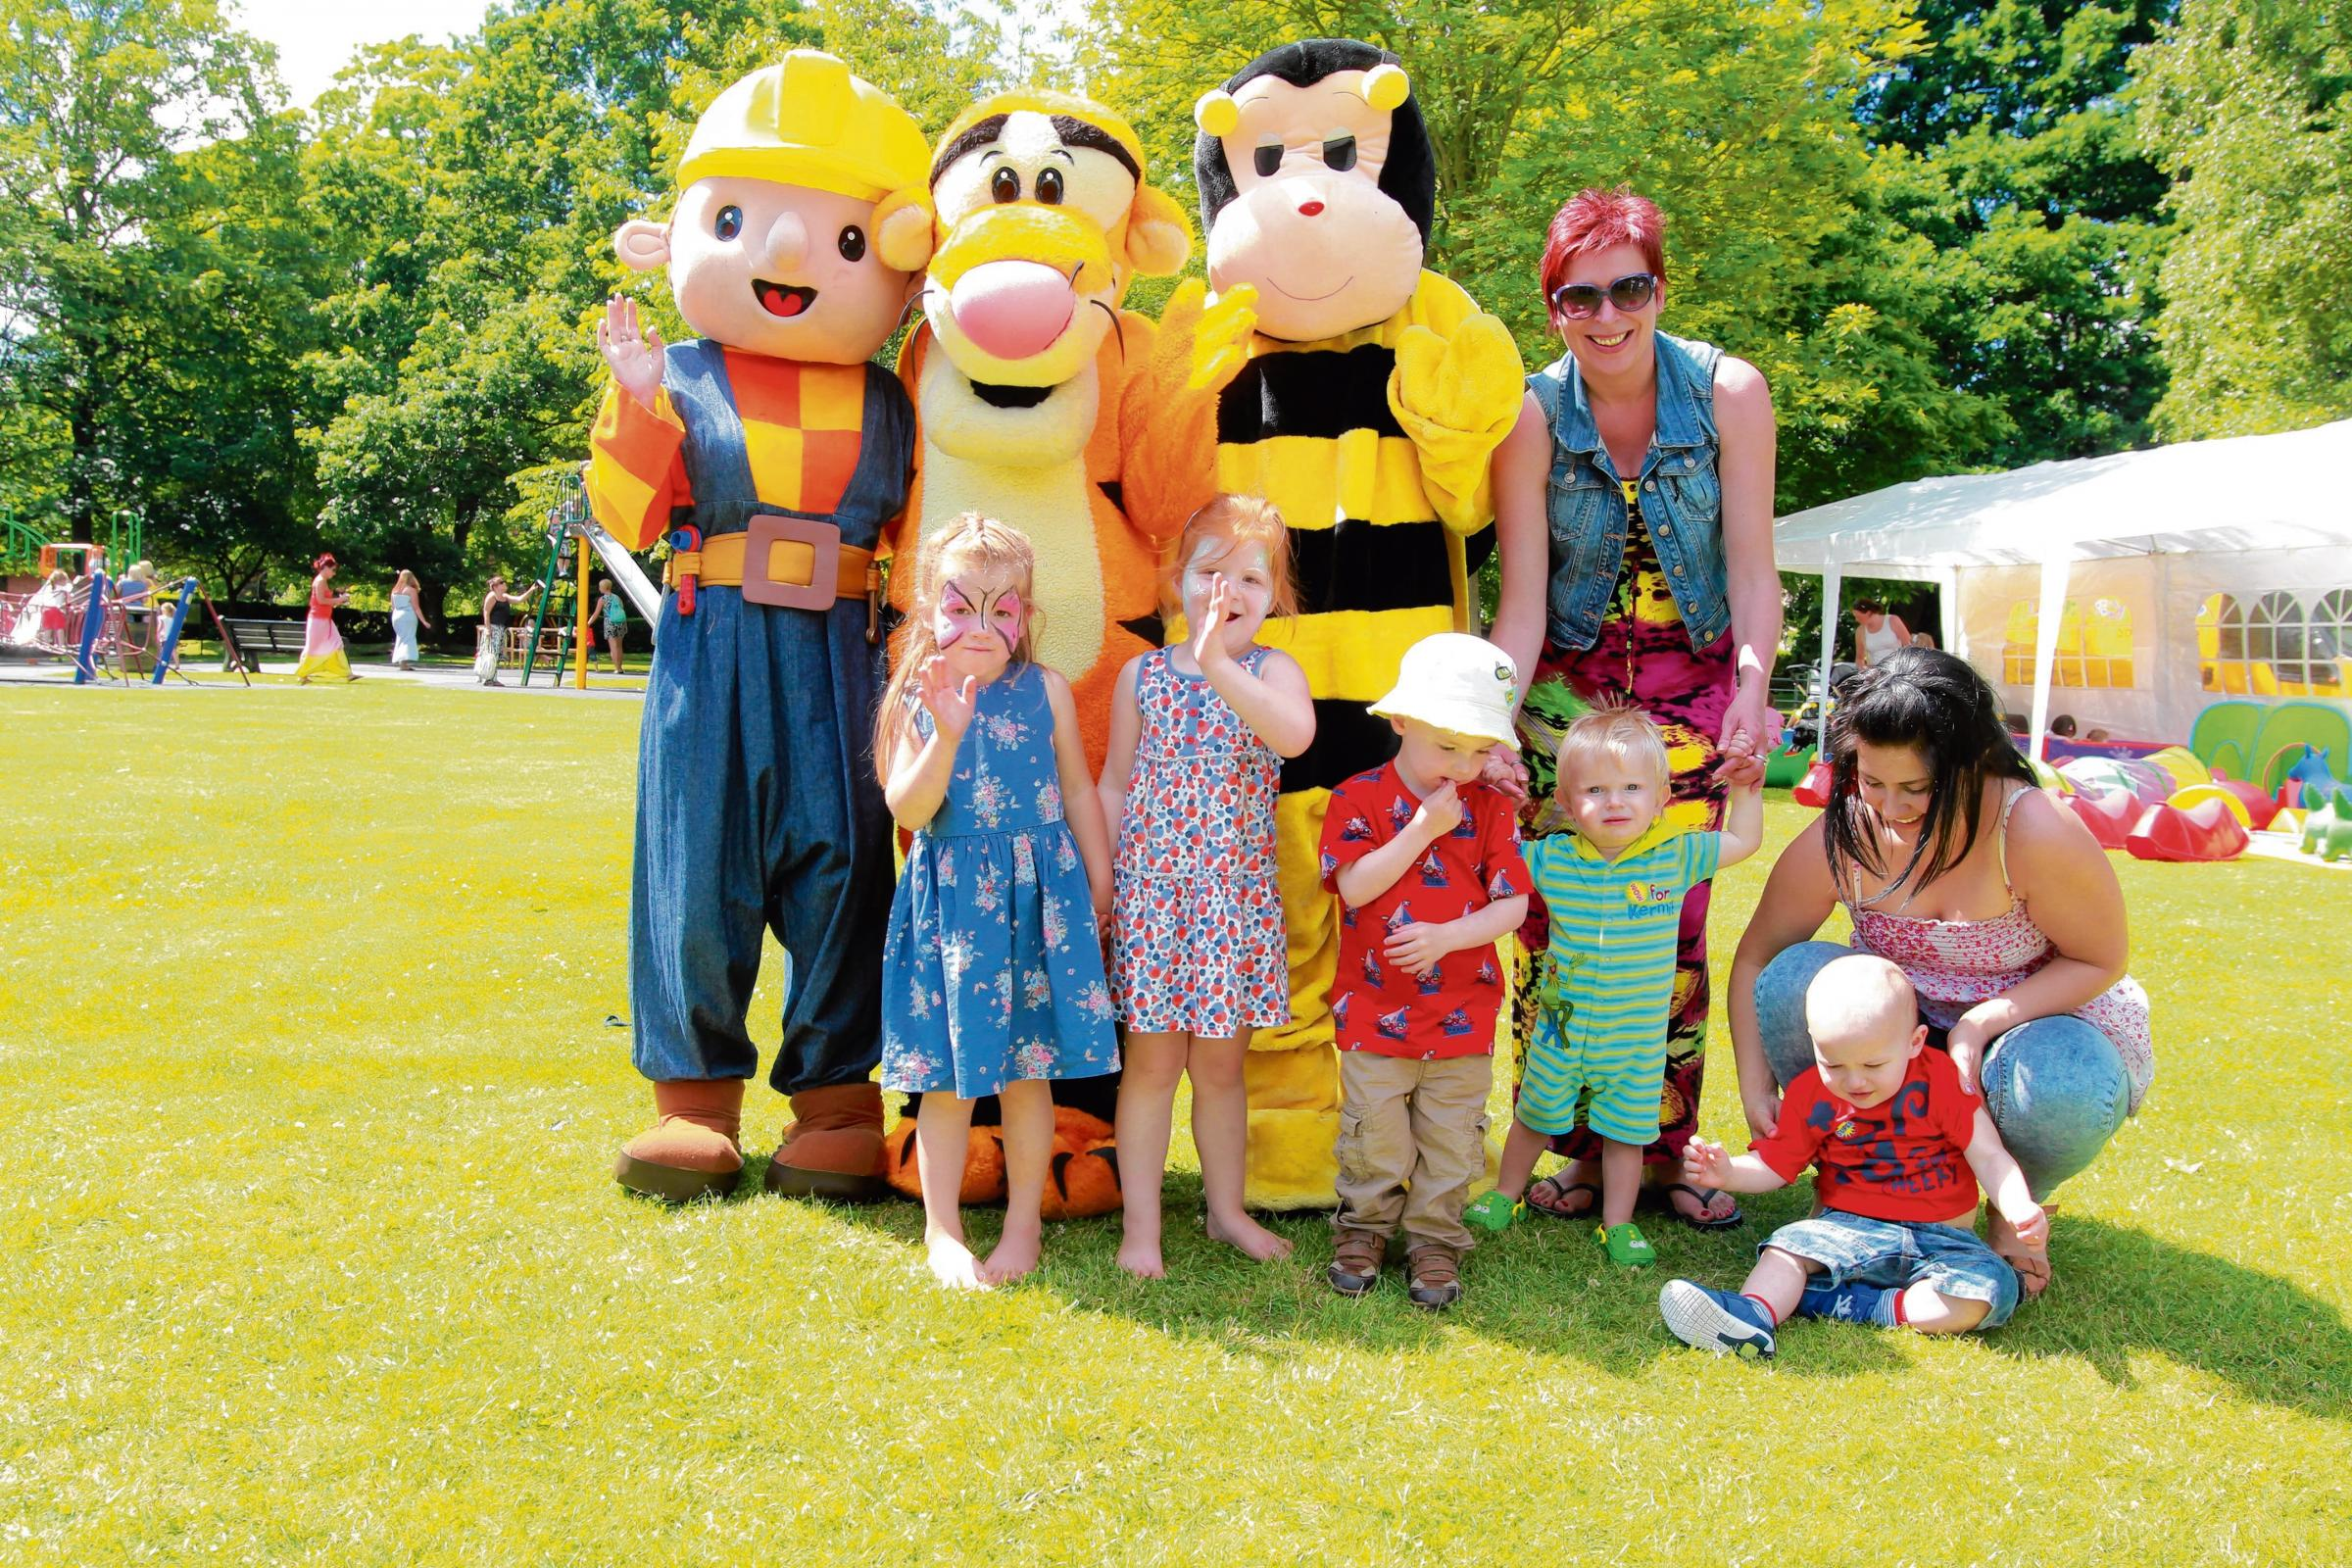 Public gardens children's festival is a hit for children and parents